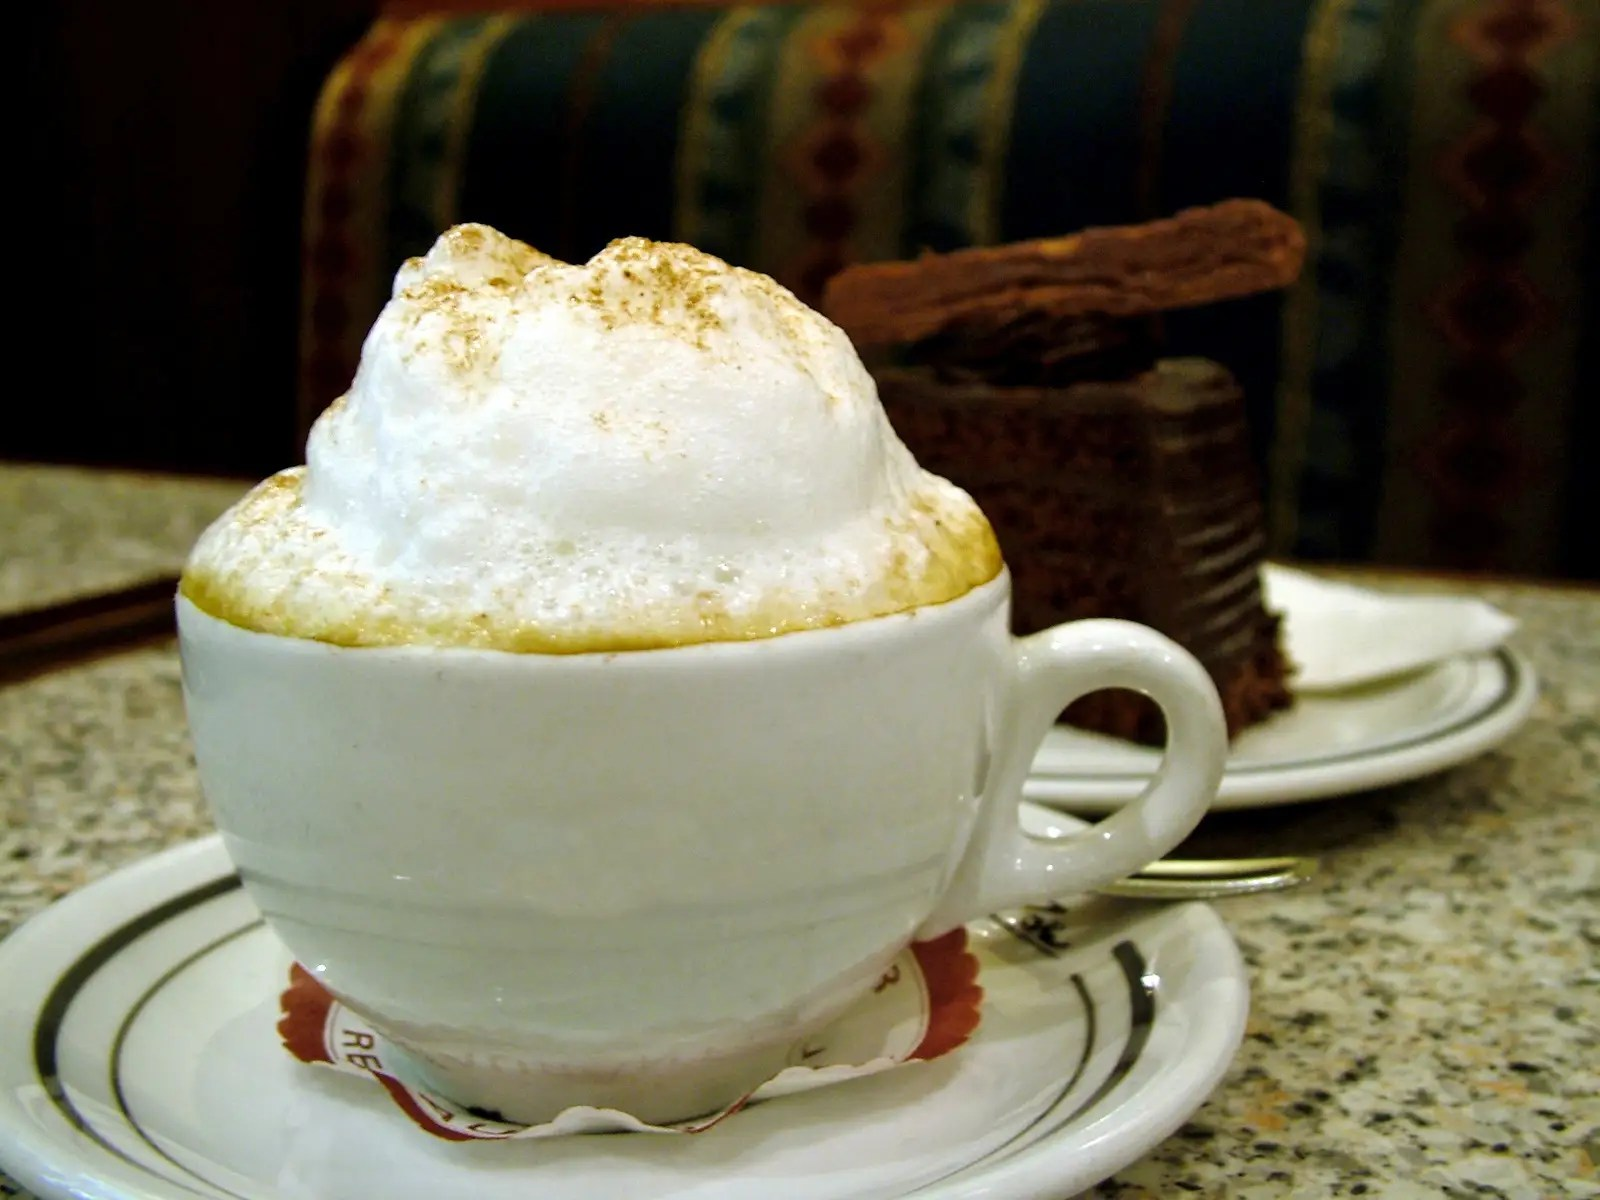 ITALY: Many Italians begin their day with a cappuccino and hard roll or biscotti.